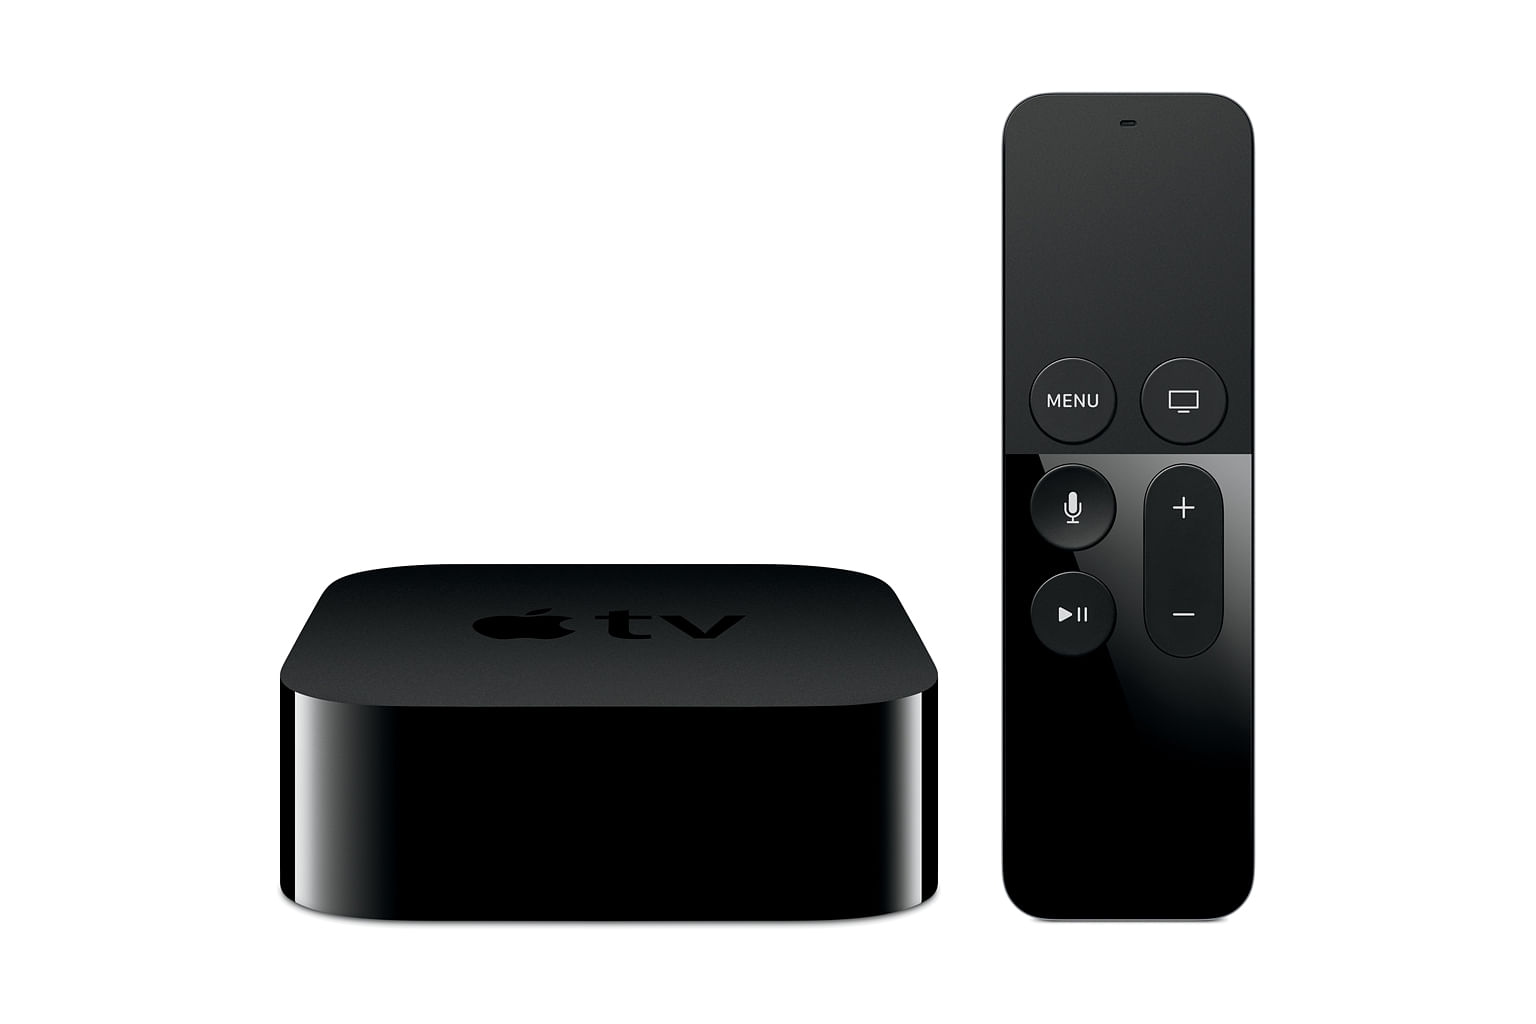 One advantage that the new fourth-generation Apple TV has is the tvOS ecosystem, which, the writer believes, will continue to grow.